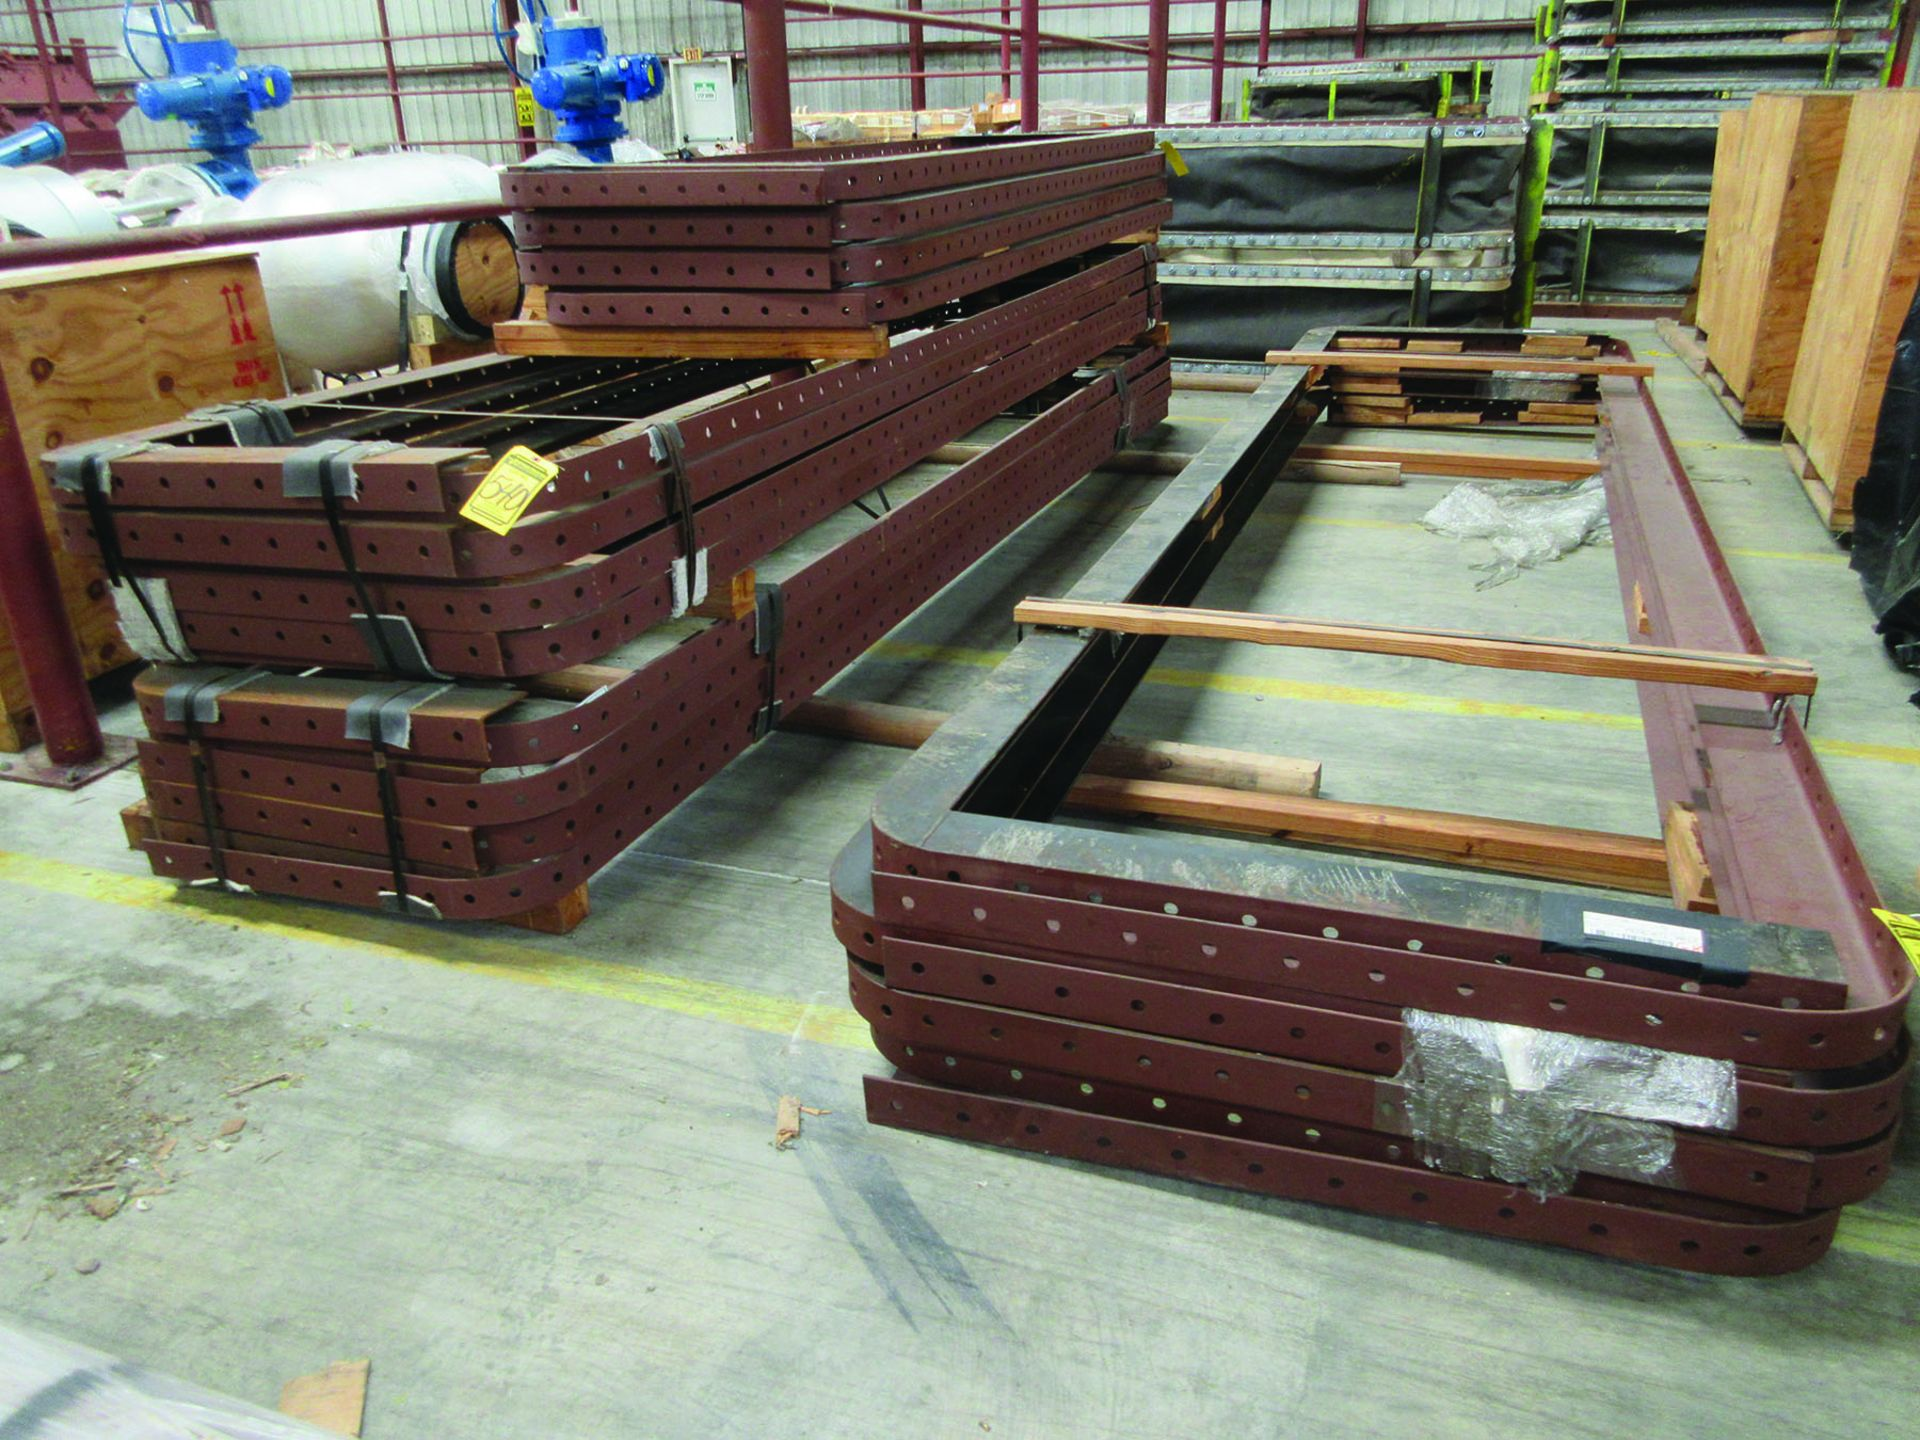 PALLET OF GAS DUCT TO AIR HEATER PRE FAB STEEL, OTHER FAB STEEL, V-BELTS, BELLOWS, GRID G8 - Image 3 of 6